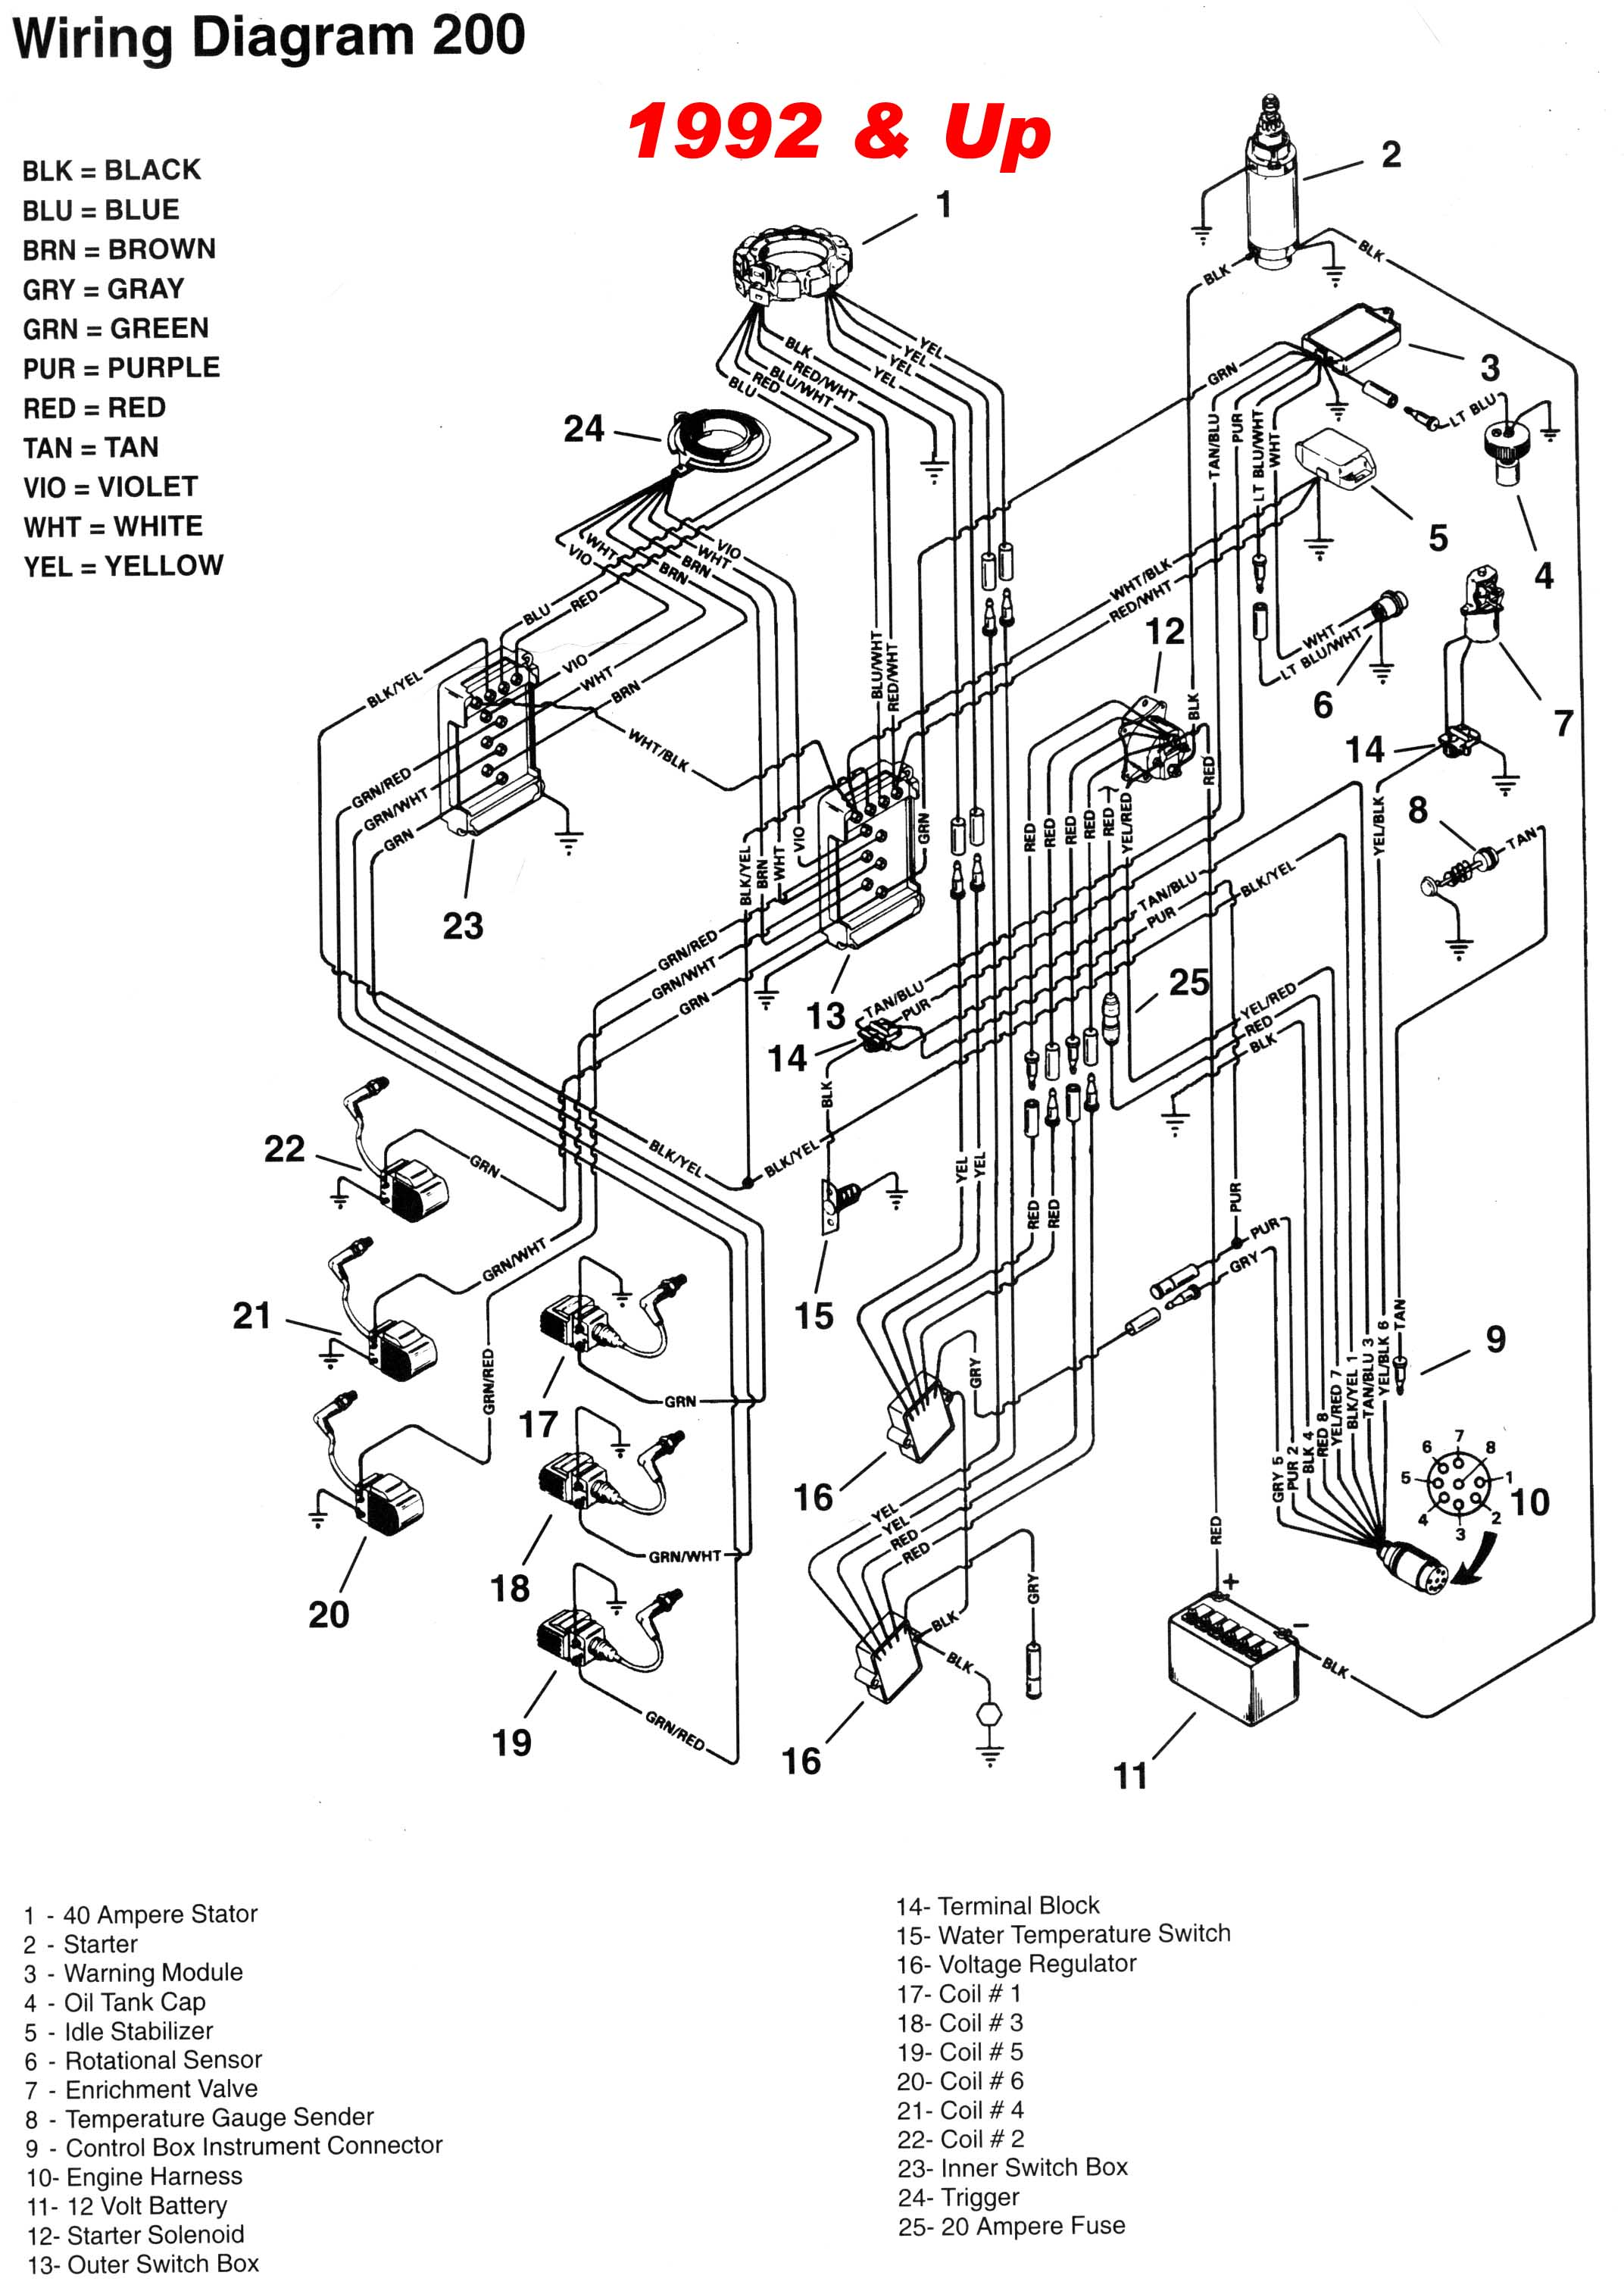 mercury_92up_200_wiring mercury outboard 2 5 and 3 0l v6 and gearcase faq yamaha outboard oil tank wiring diagram at alyssarenee.co